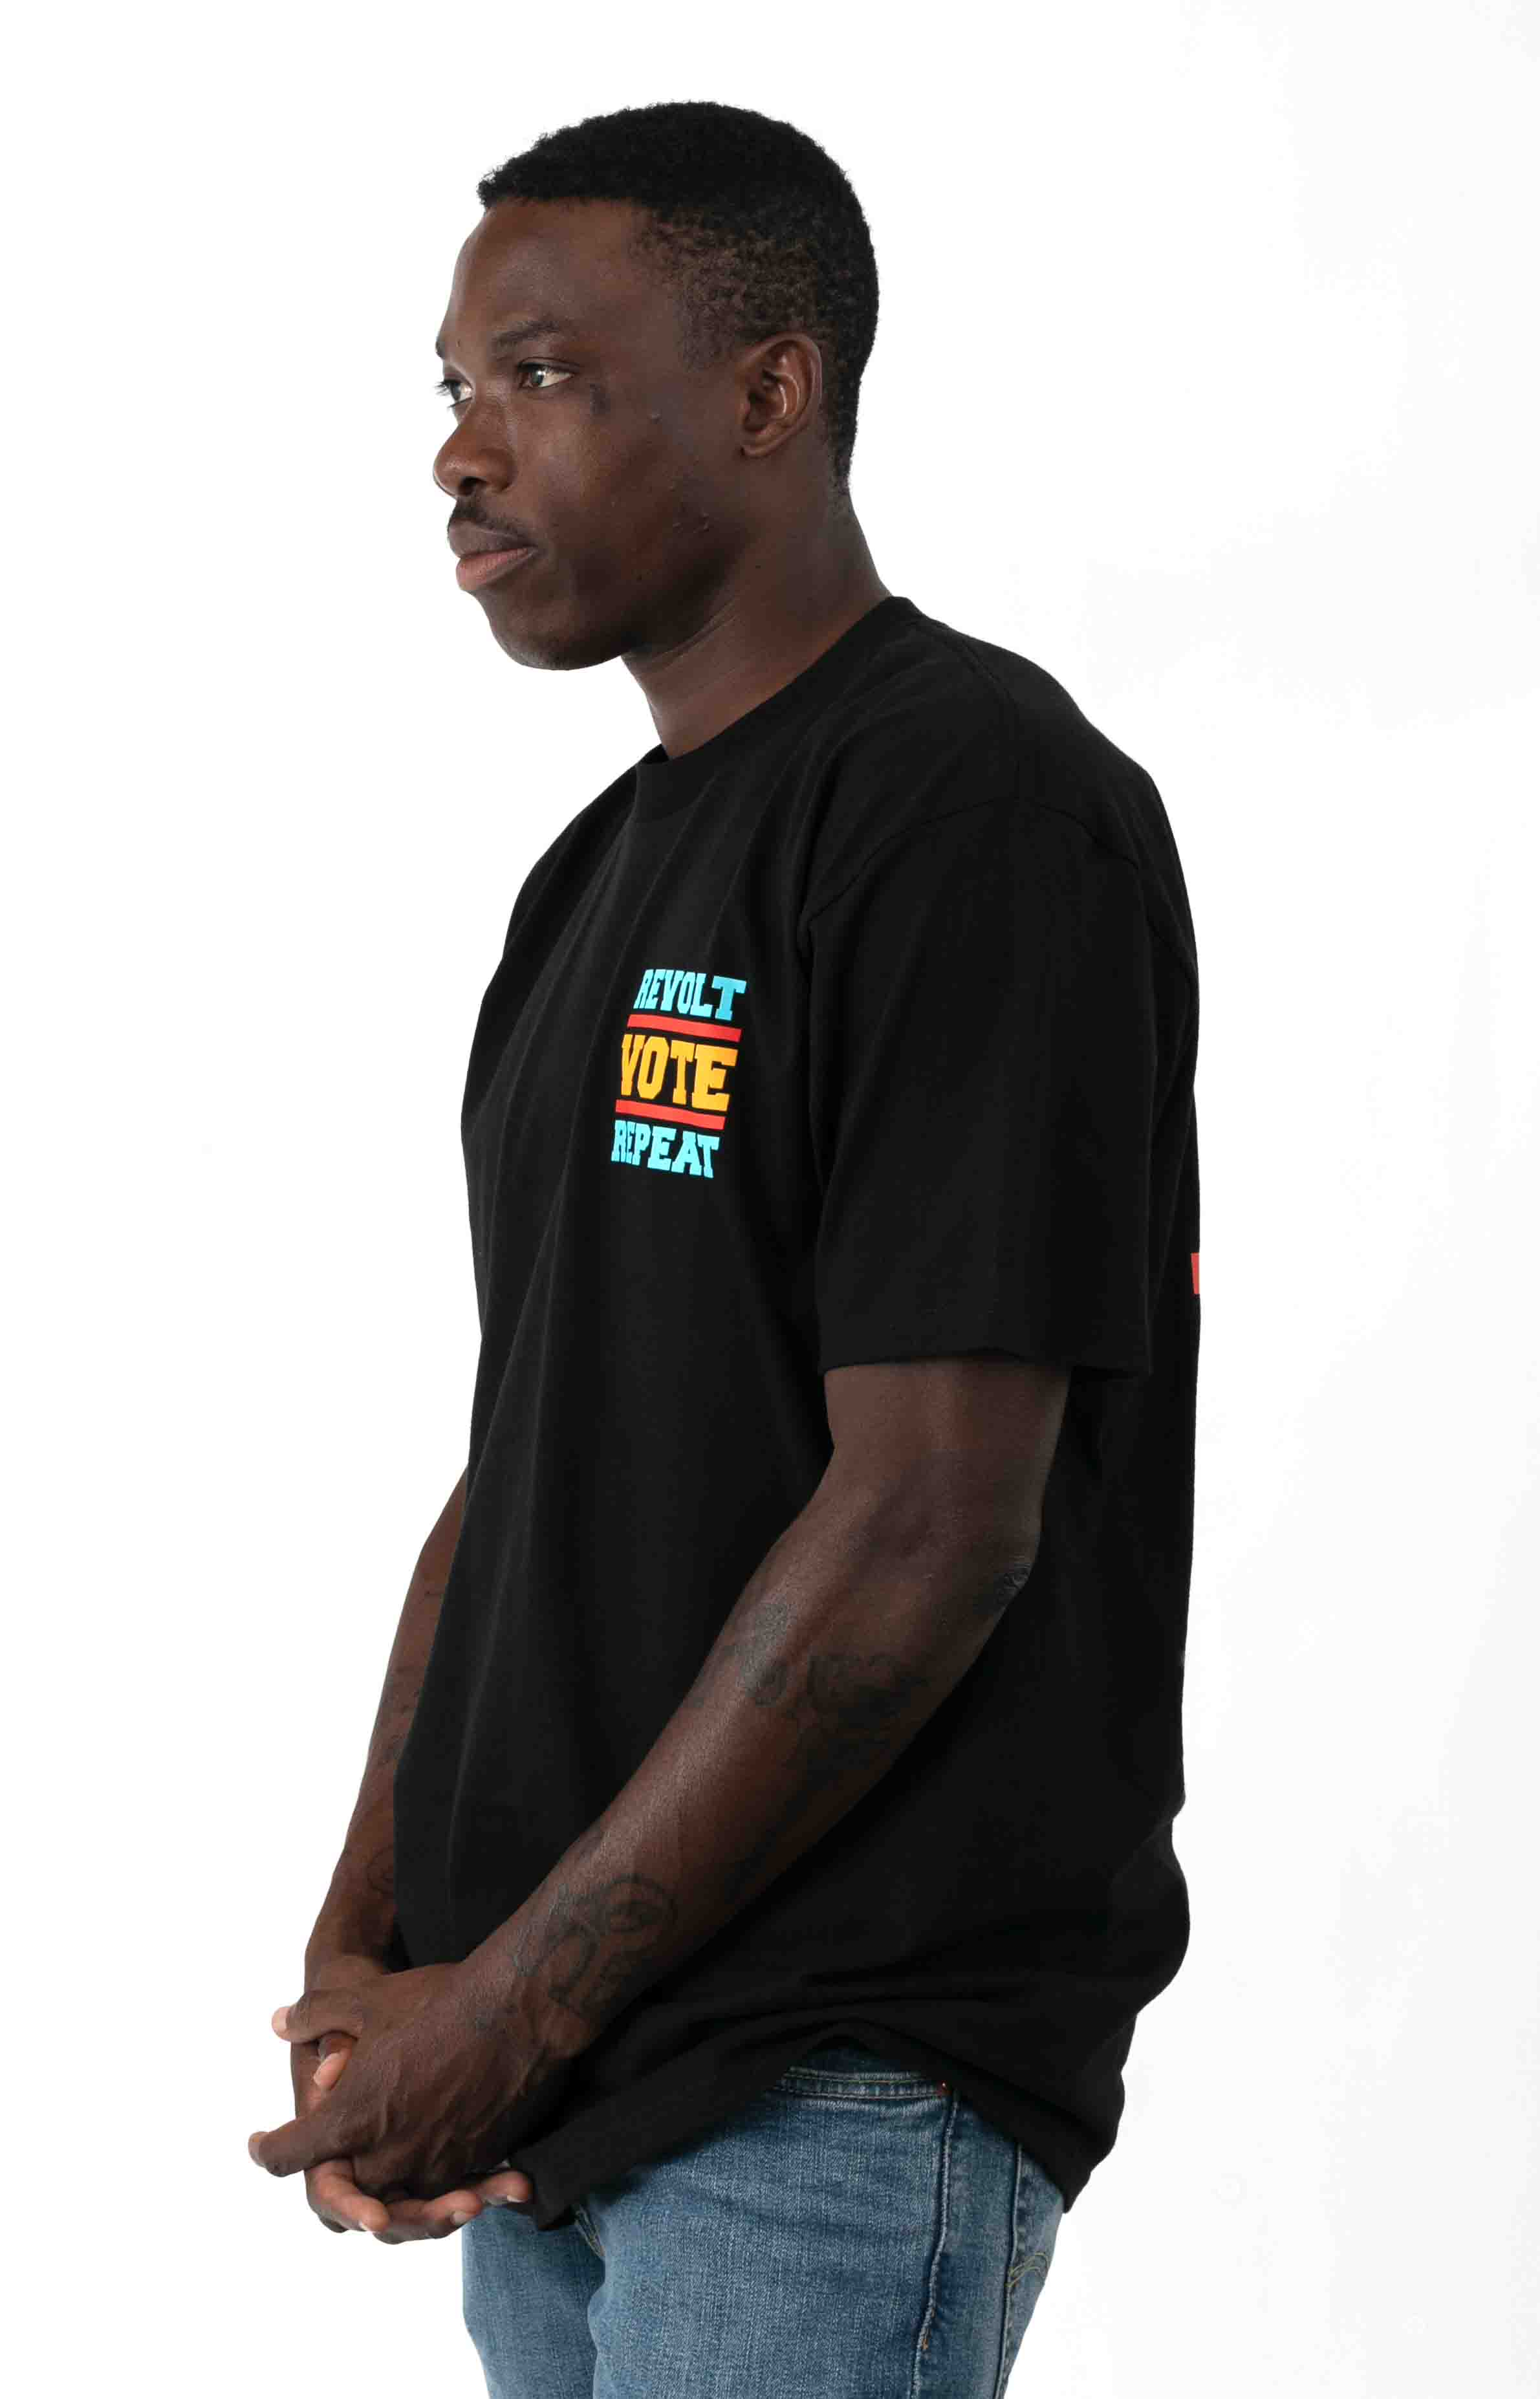 Revolt Vote Repeat T-Shirt - Black 3